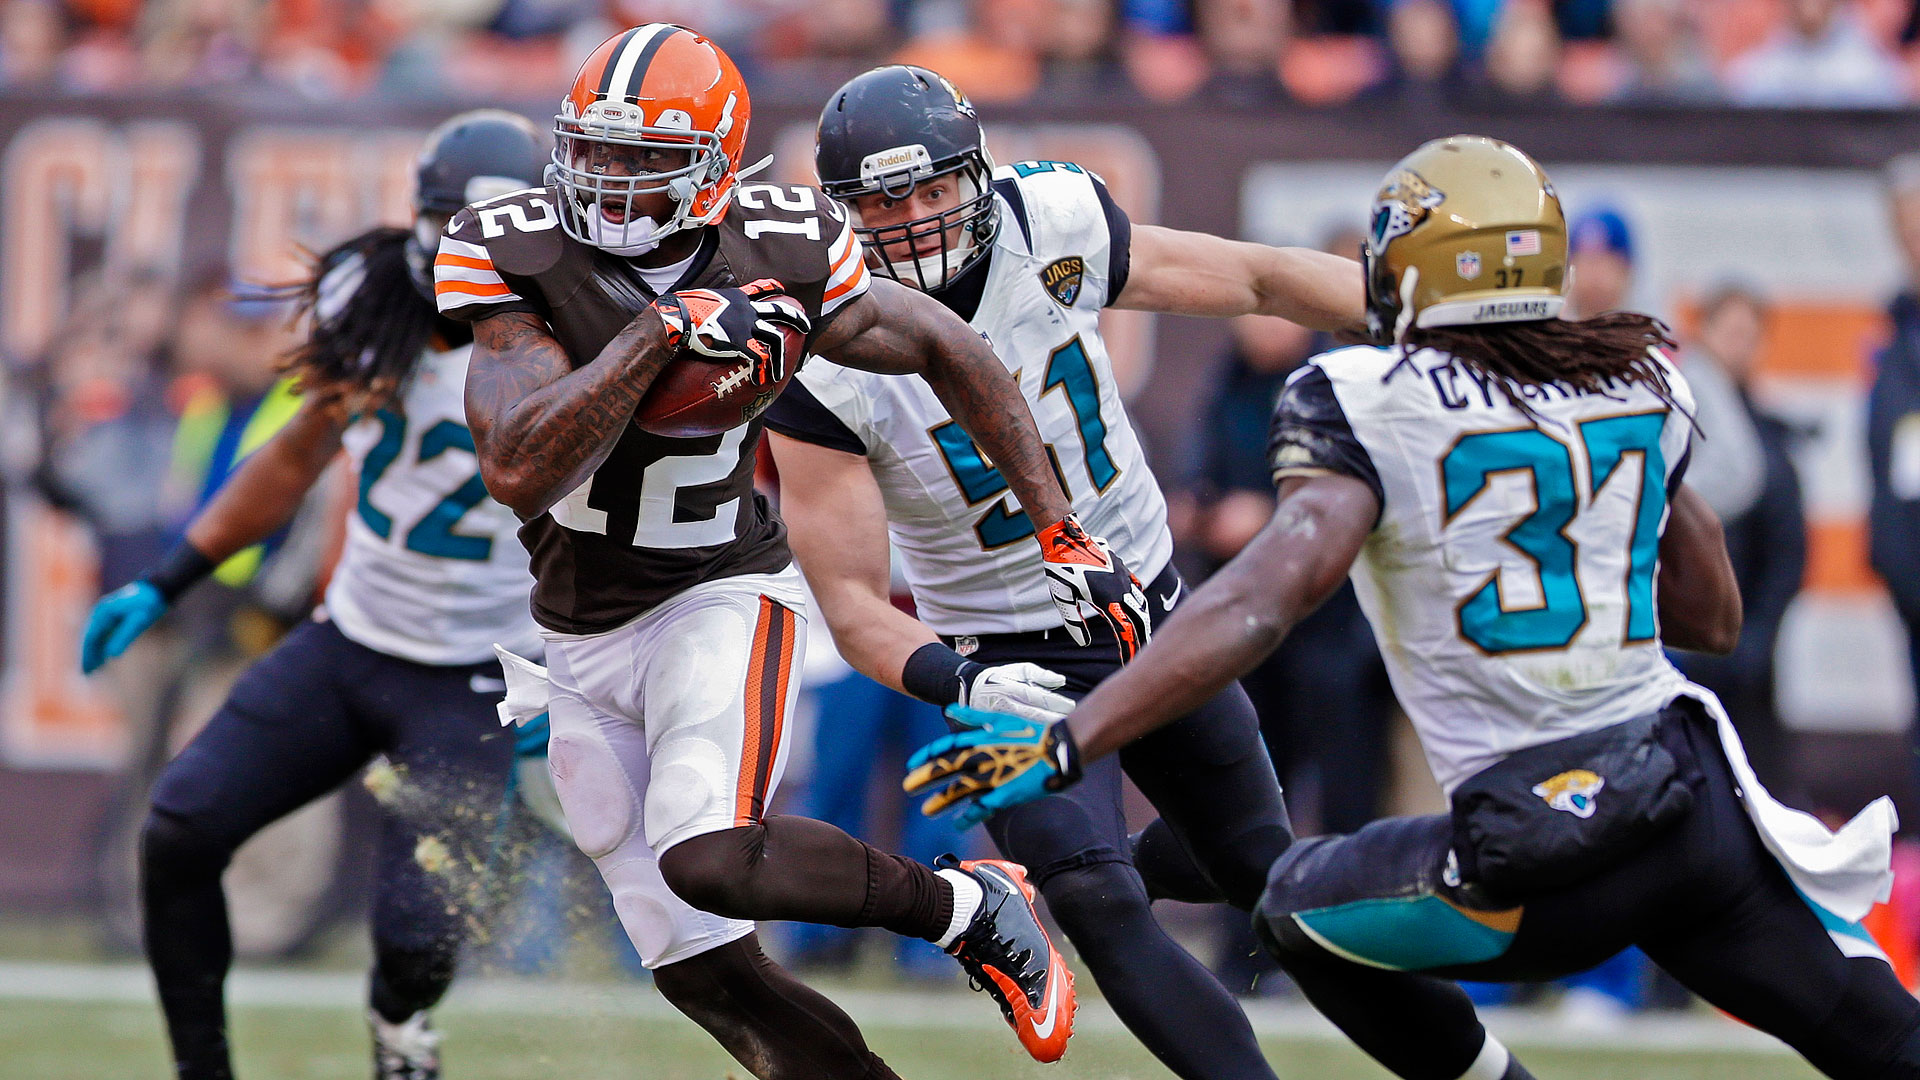 Report: Browns' Gordon could face year-long suspension